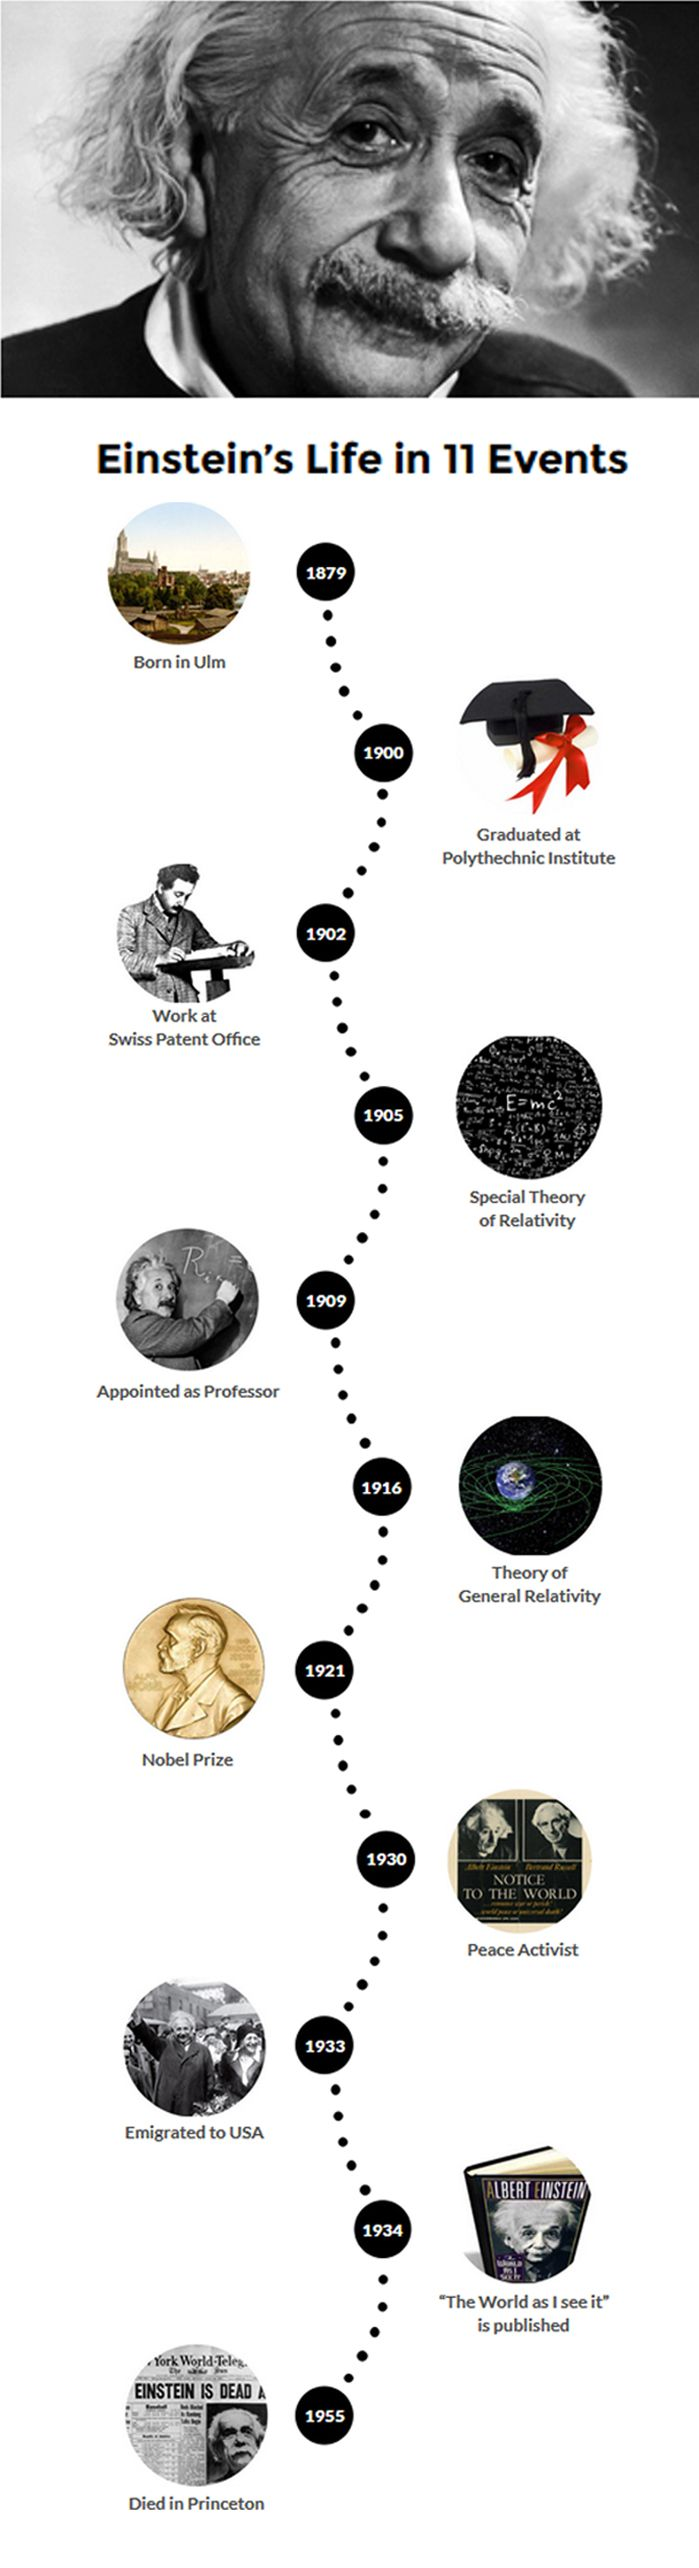 An Albert Einstein biography timeline: his life story told in 11 key events. #einstein #timeline #biography